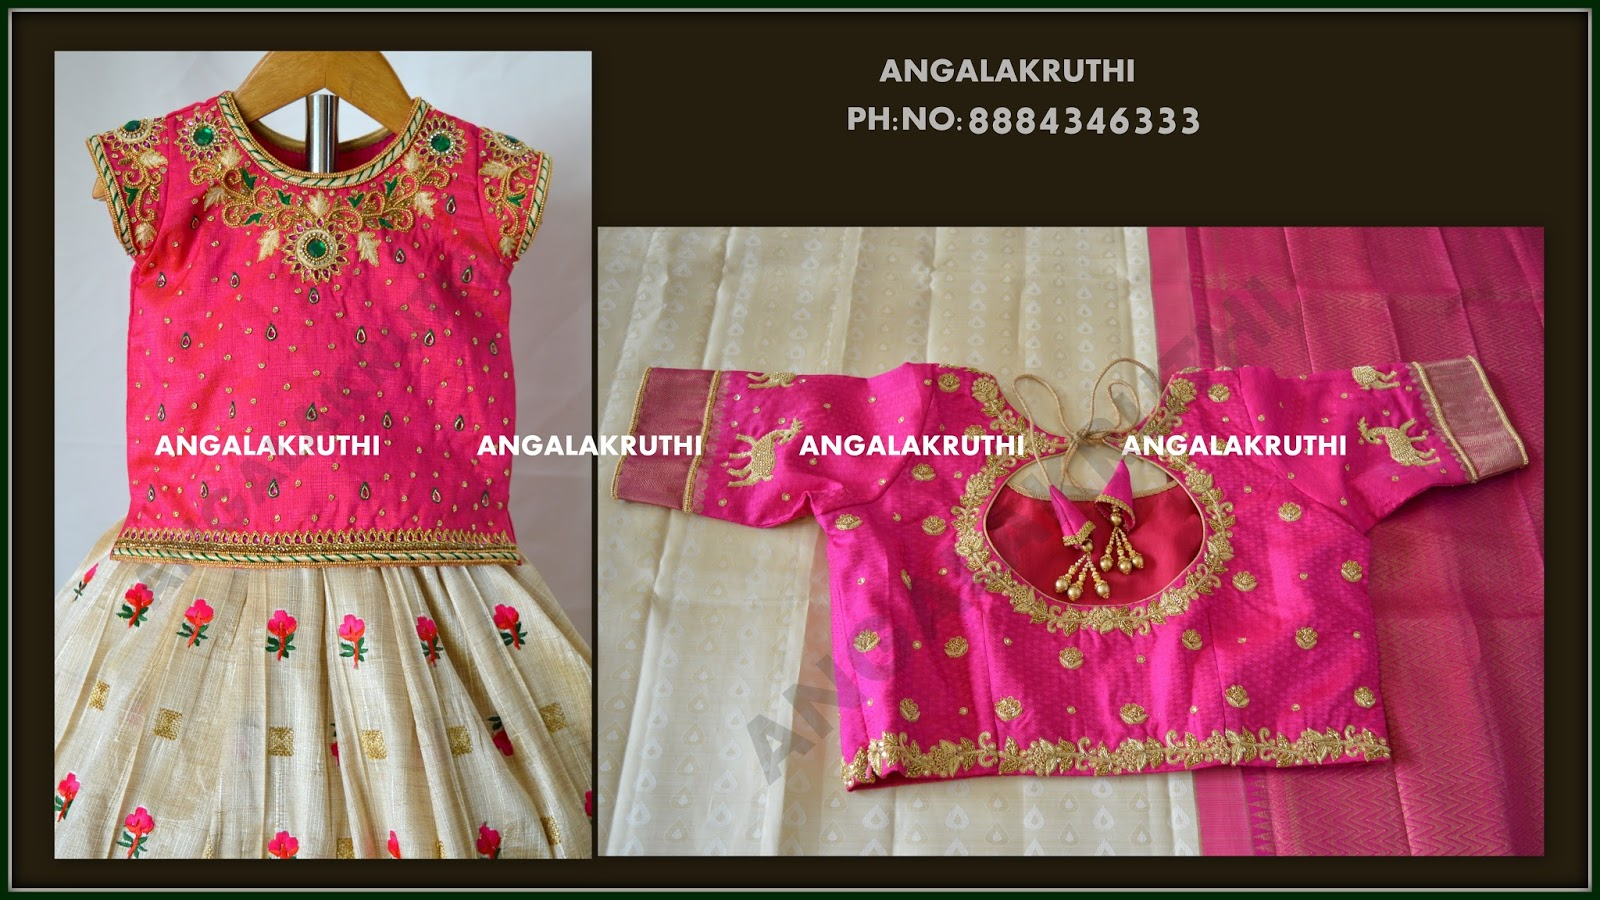 Angalakruthi Boutique Ladies And Kids Designer Boutique In Bangalore Blouse Embroidery Designs By Angalakruthi Boutique Bangalore Watsapp 8884346333